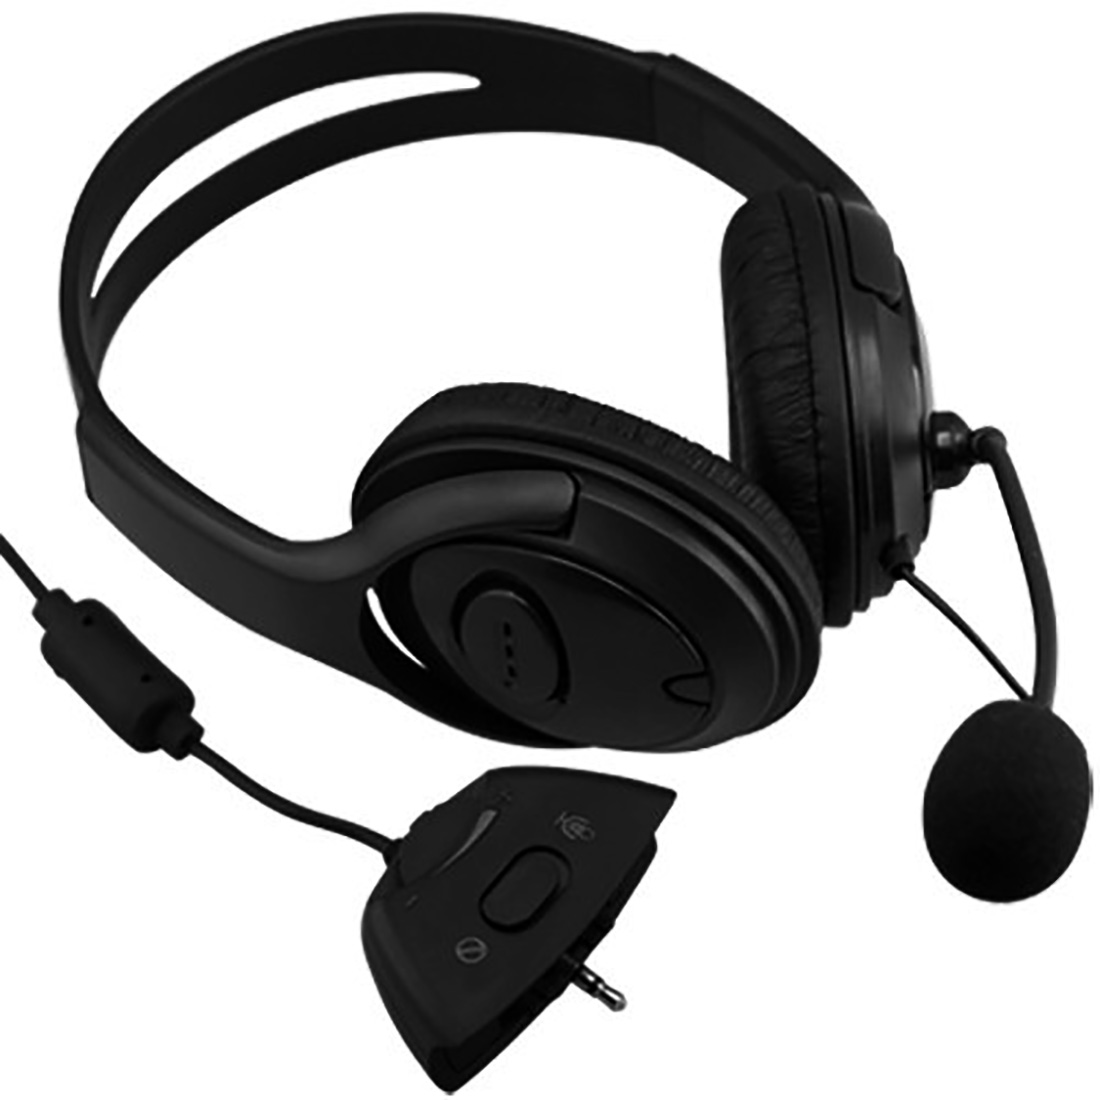 protable xbox360 Wired Gaming Chat dual Headset Headphone Microphone for xbox 360 computer Black